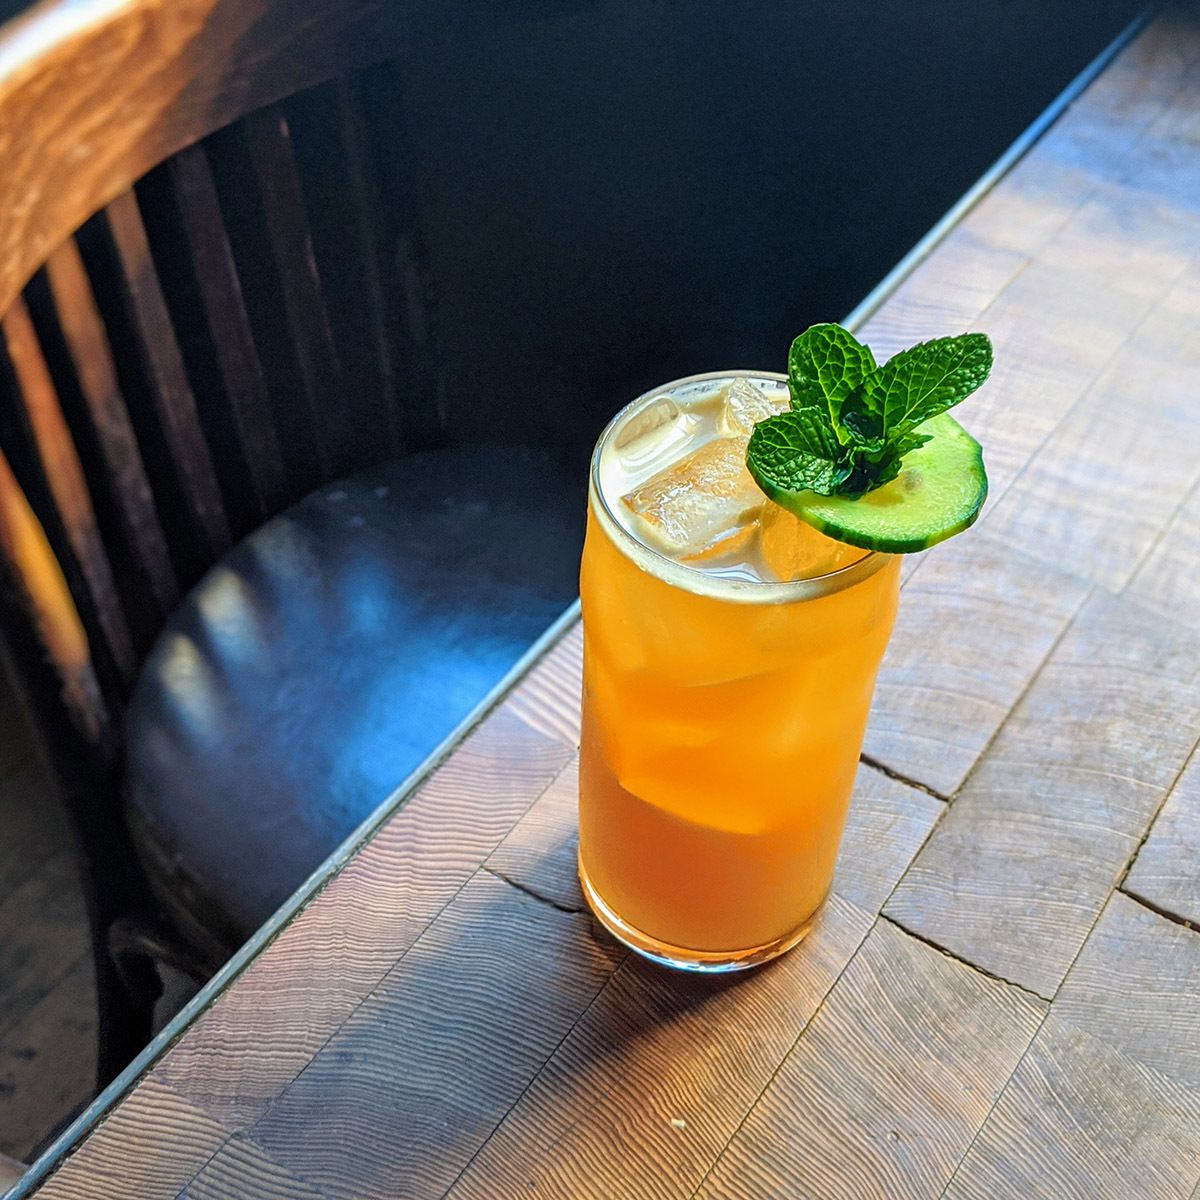 Pimm's Cup at 15 Romolo